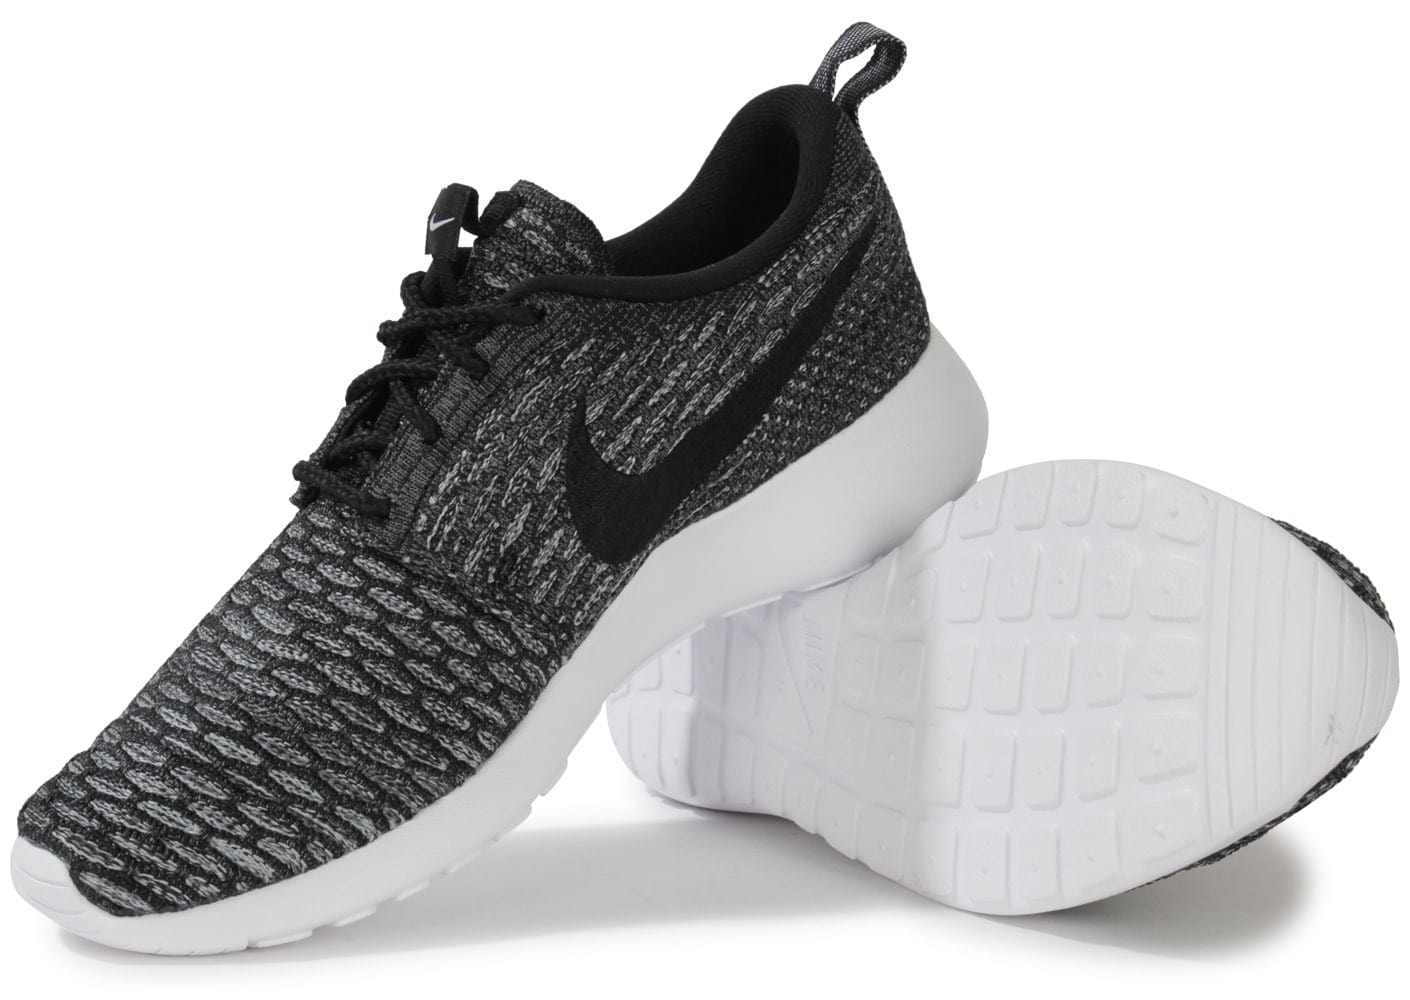 grossiste c7ae3 83bec Nike Roshe Run Flyknit Grise Et Noir - Chaussures Chaussures ...